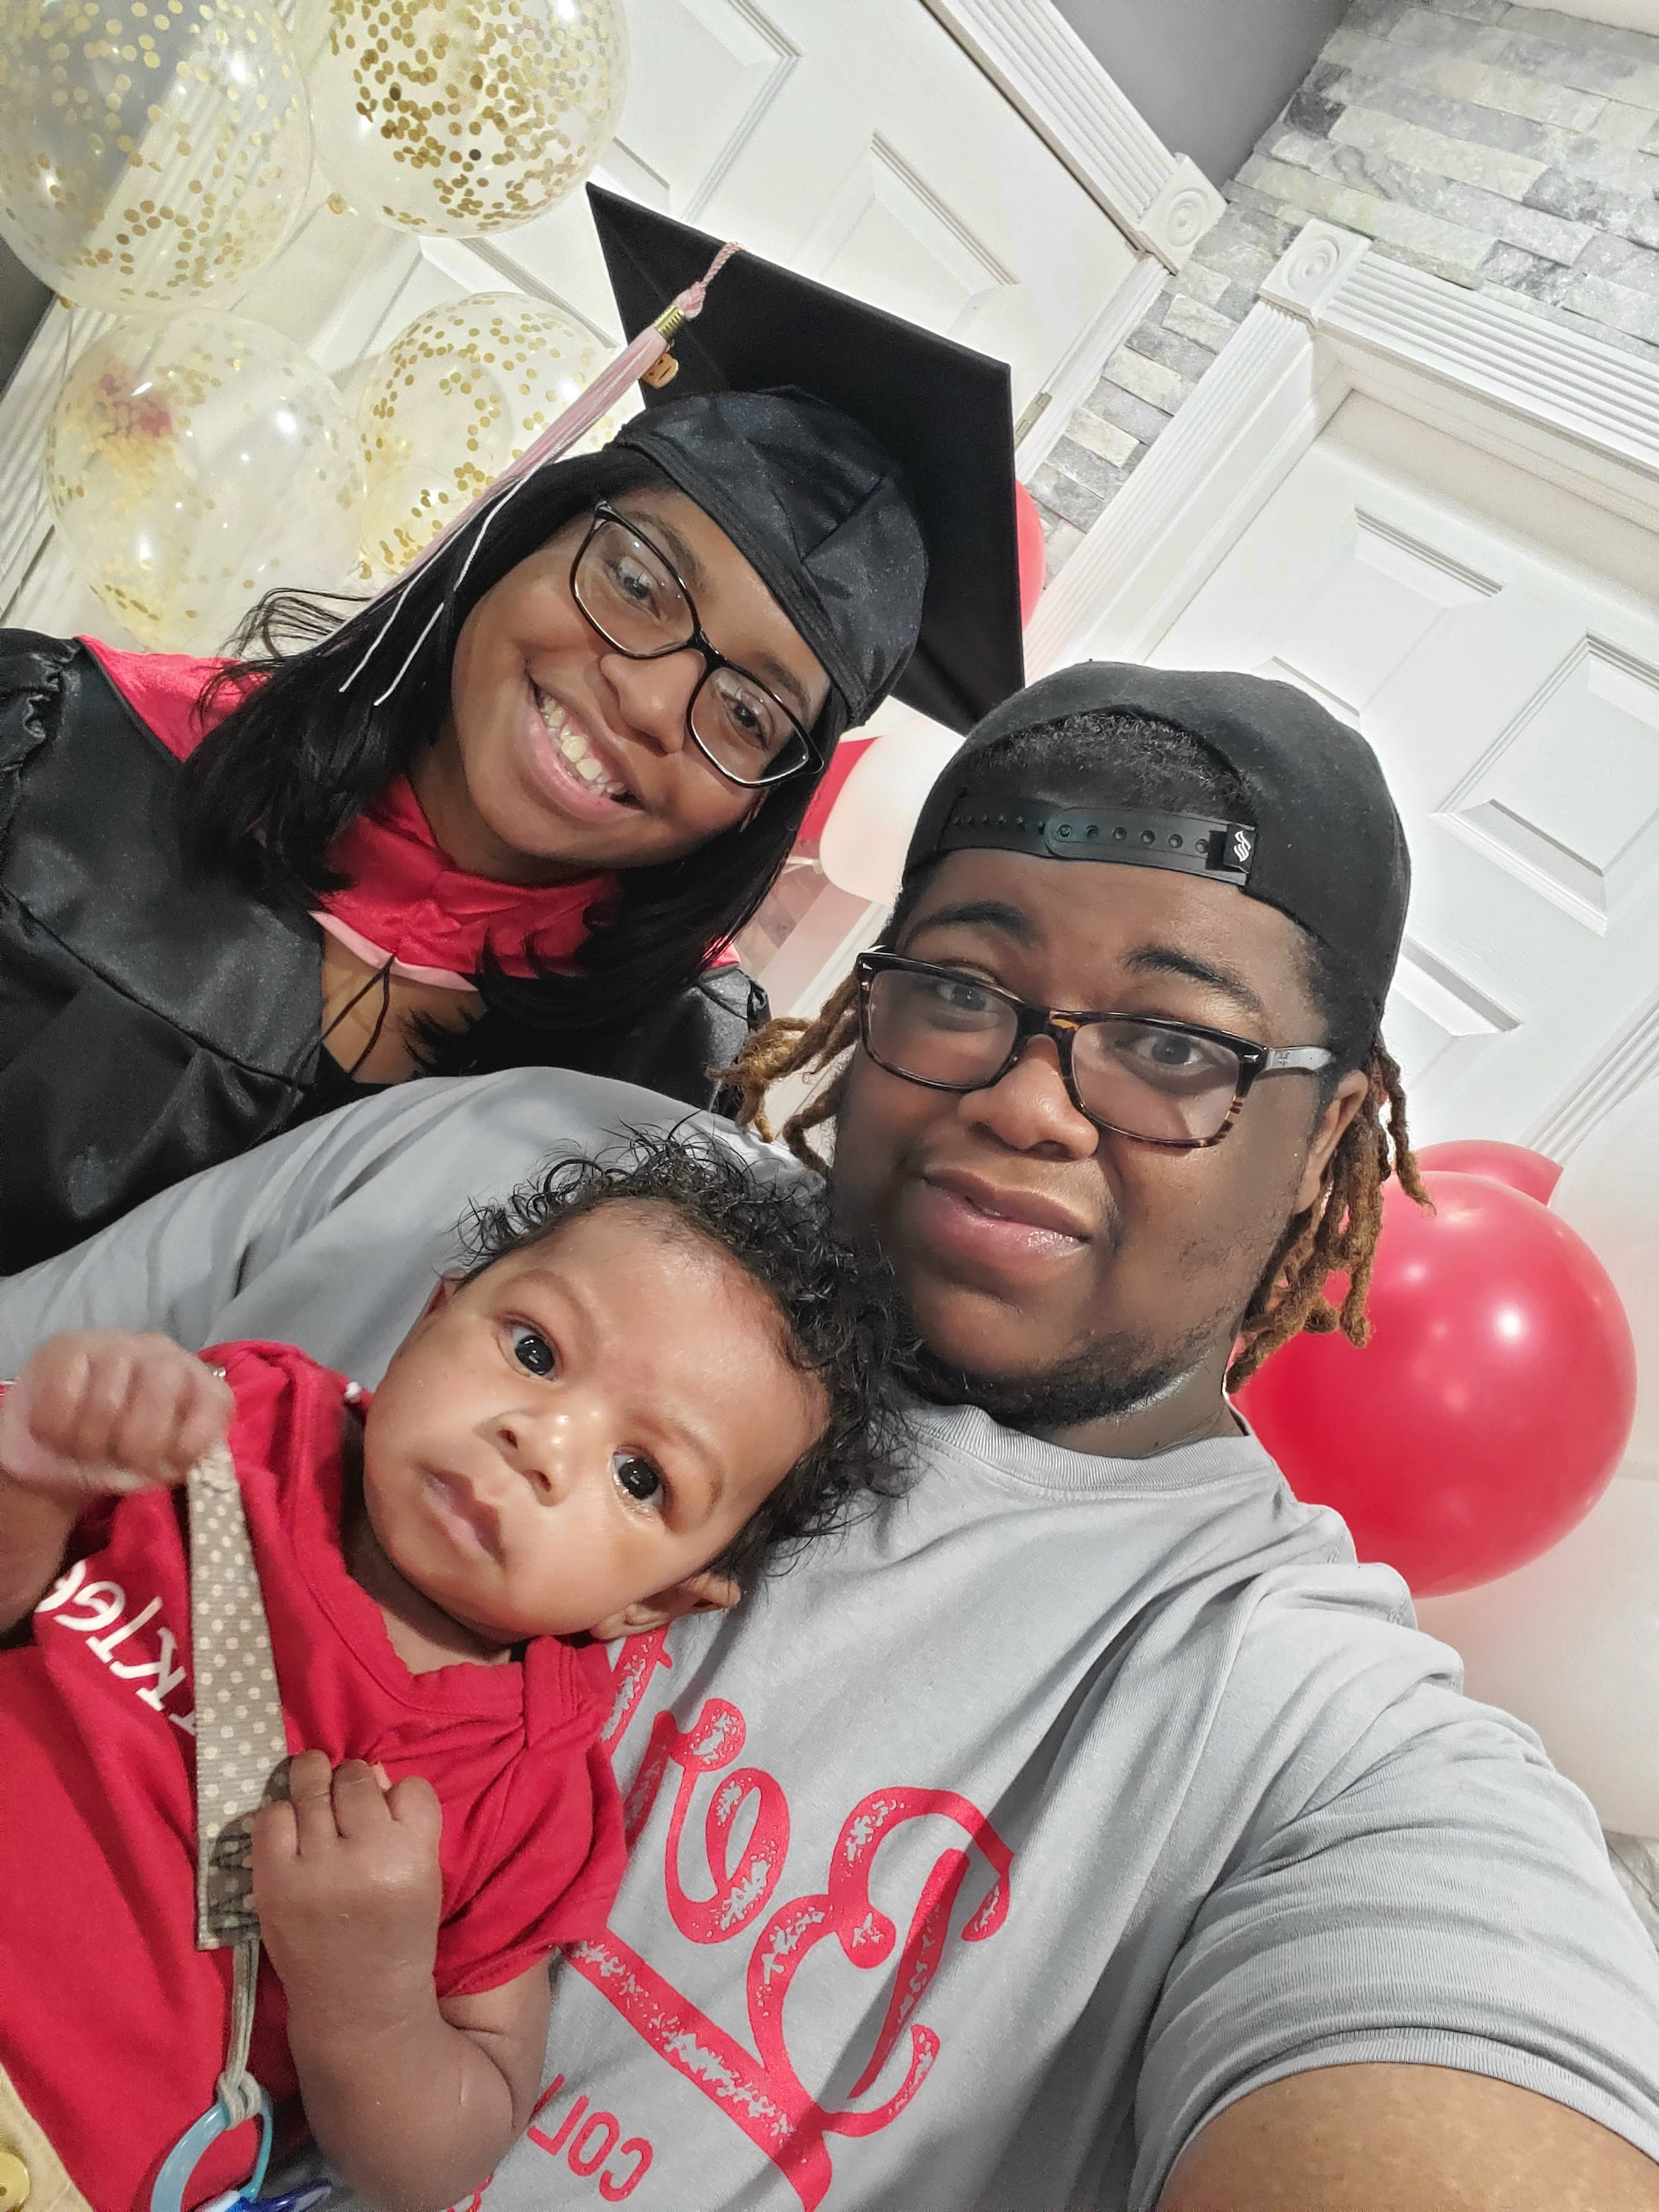 Gabrielle Davis, her husband, and newborn son take a selfie on graduation day.